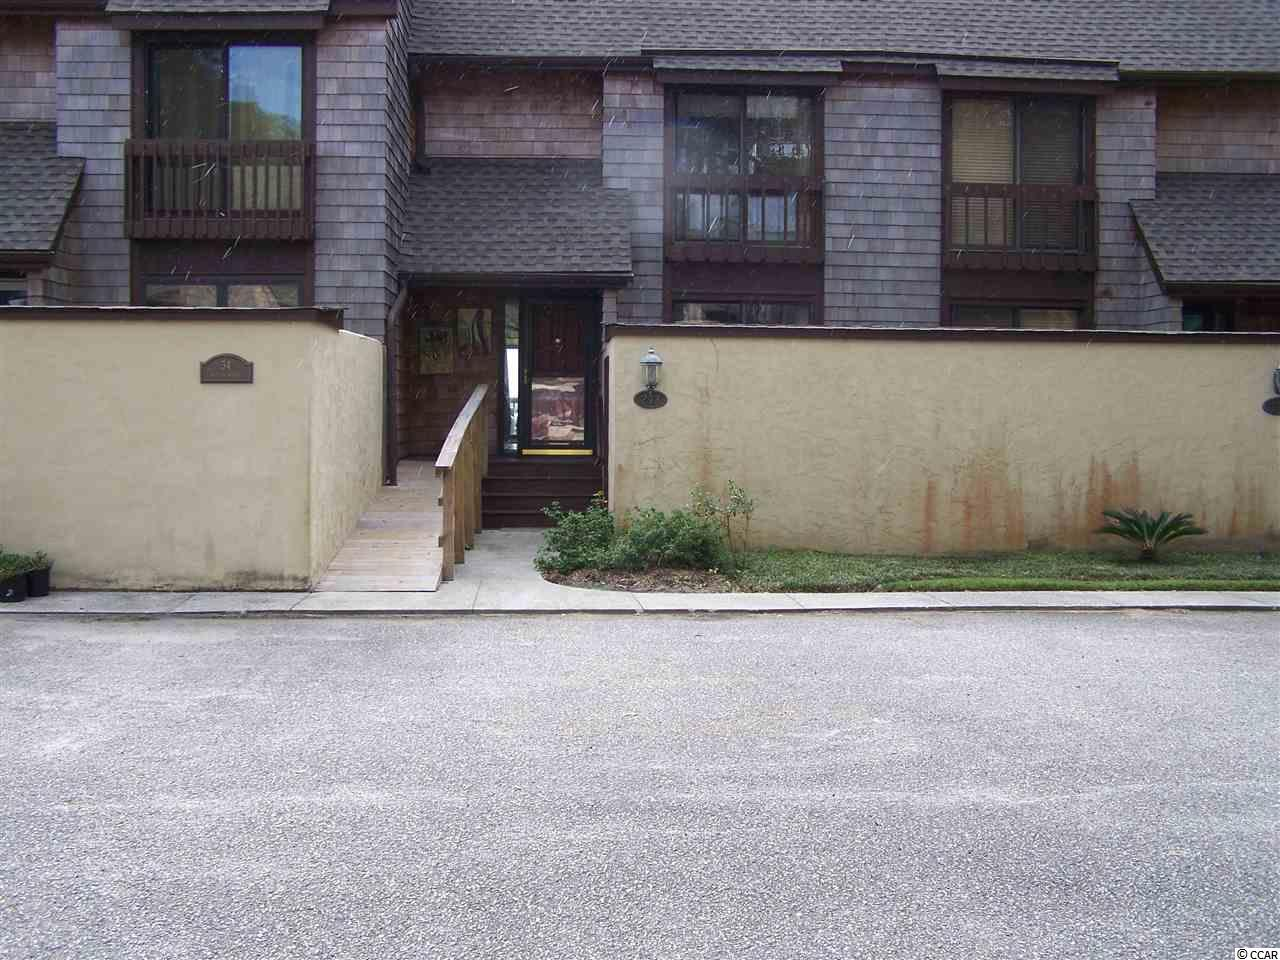 Hidden gated community on Winyah Bay and the Intracoastal Waterway. Great 2 bedroom 2 and 1/2 bath unit with views of the bay and Lake Johnstone.  Unit has recently been renovated new hardwood floors and paint and is ready for a new owner. Belle Isle amenities in 2 pools, tennis courts, Yacht Club, marina, and private gated beach house on Pawleys Island